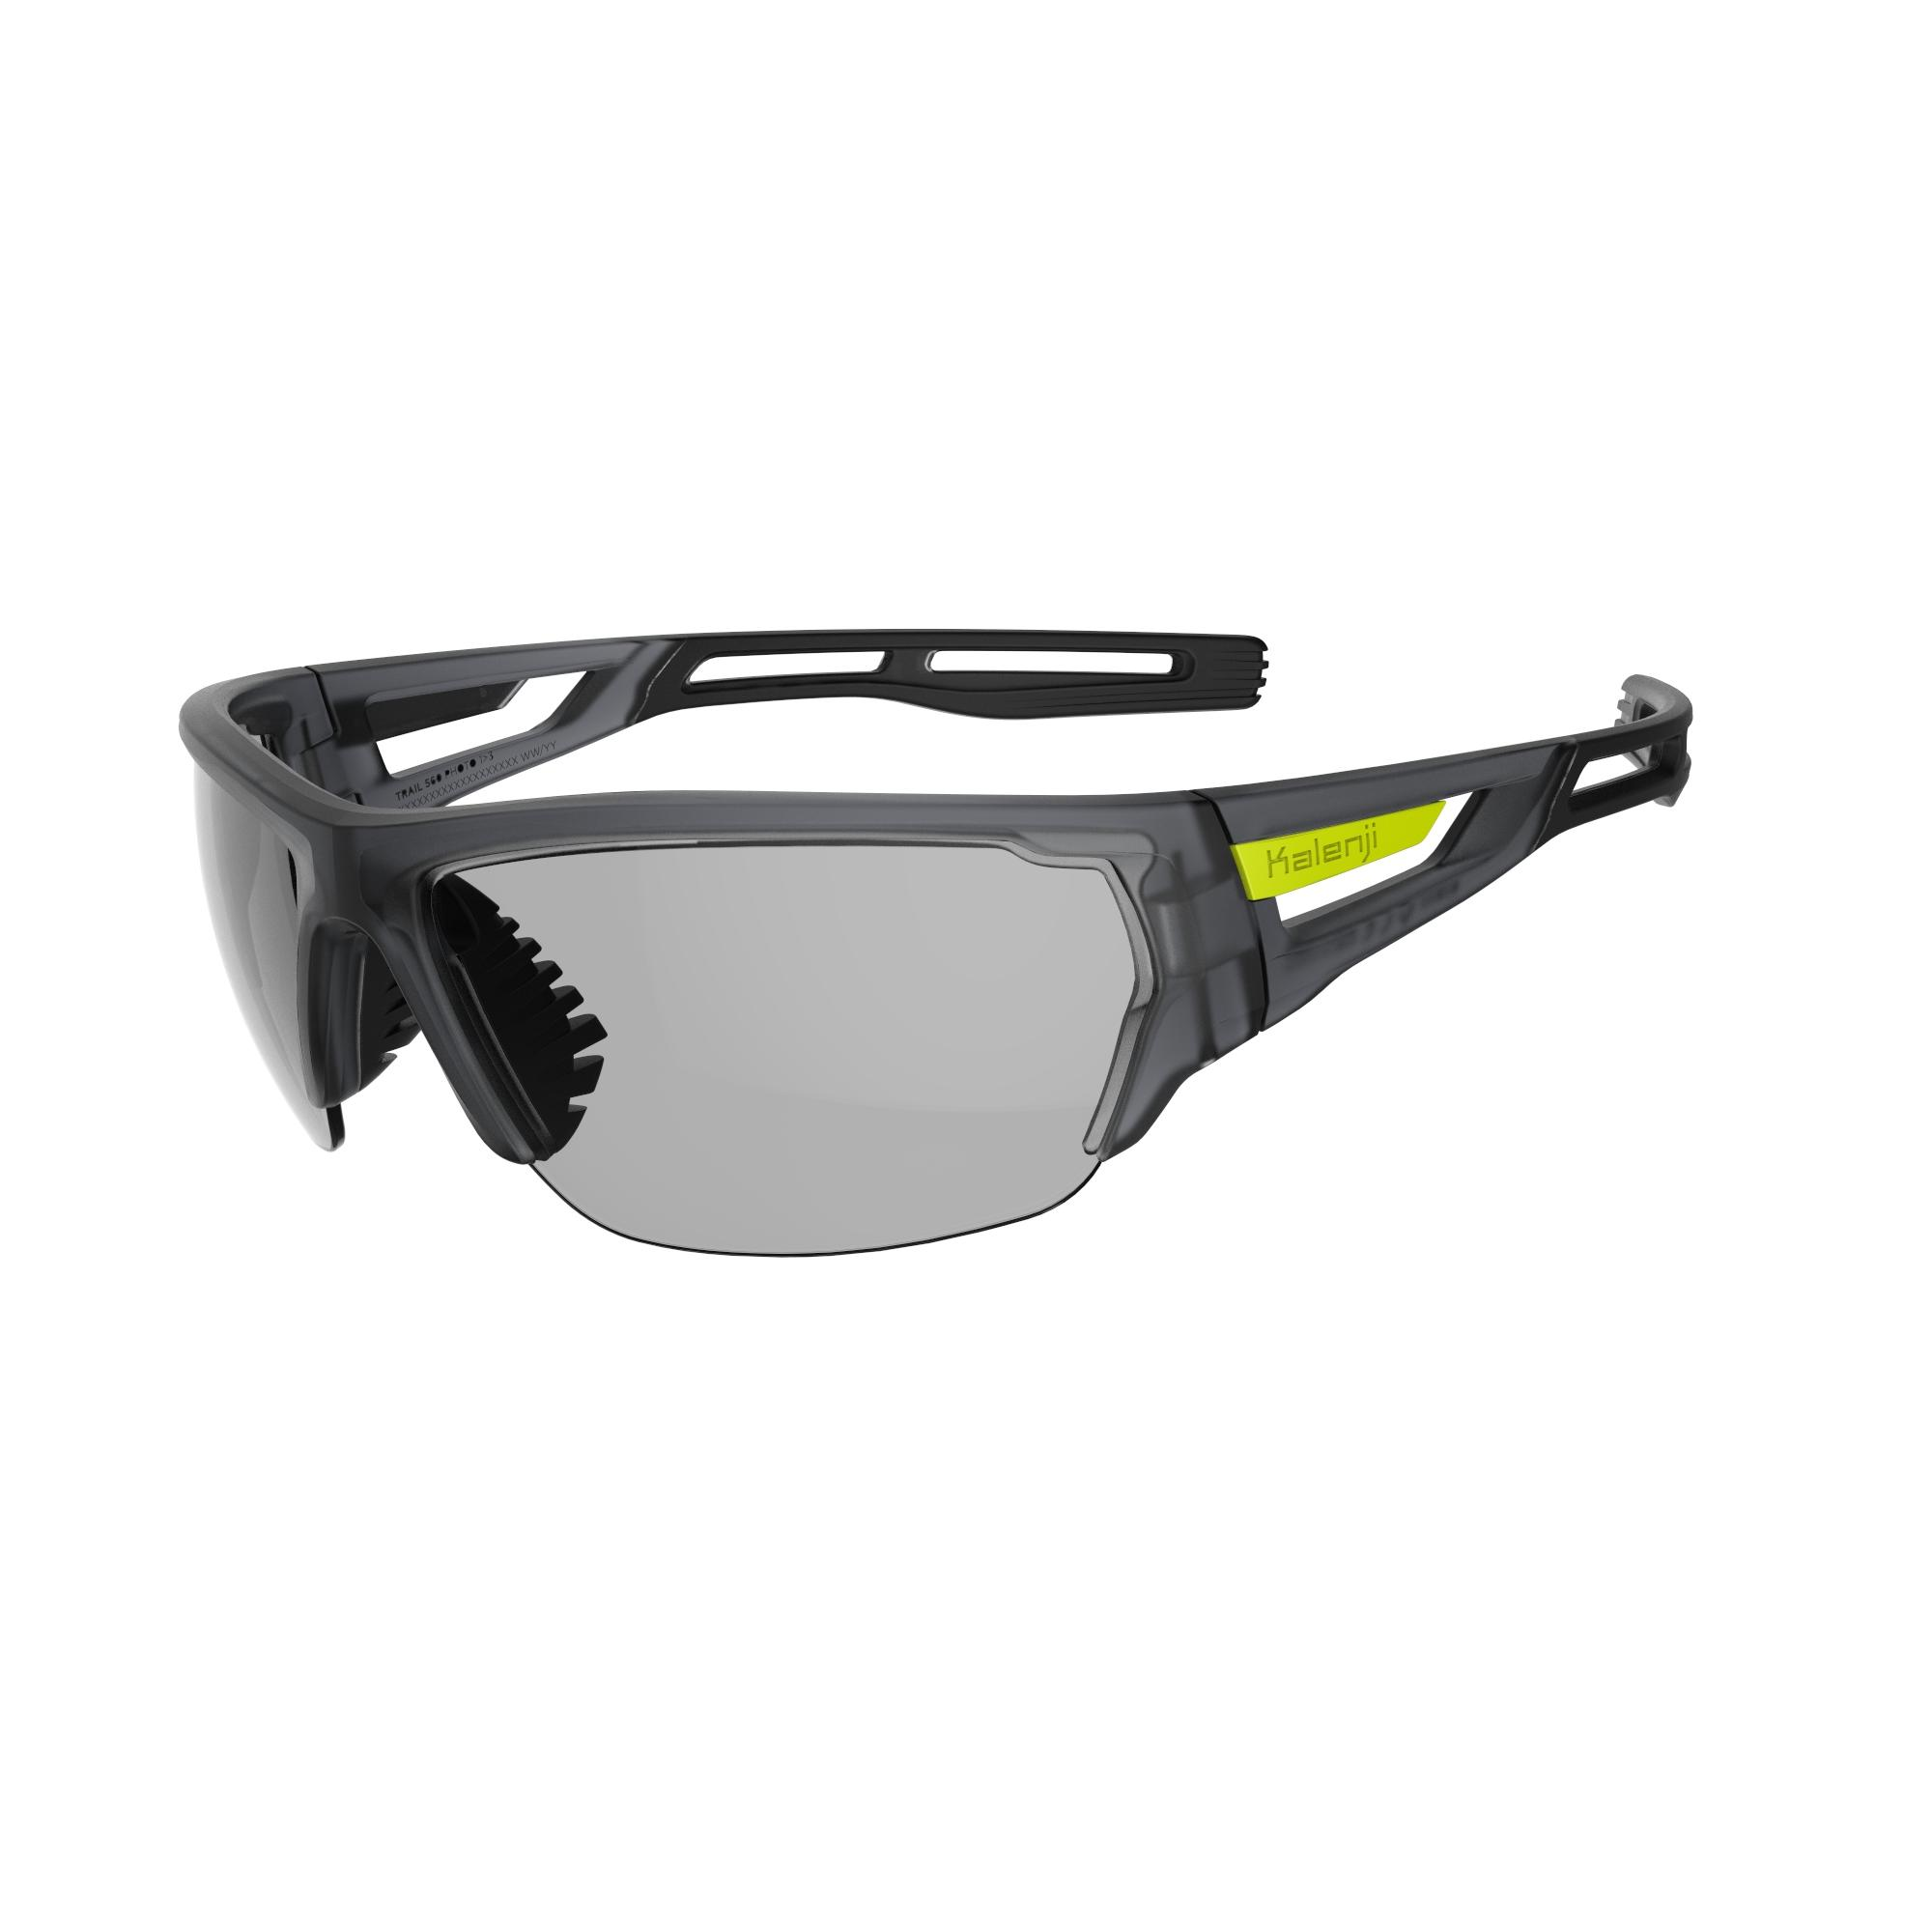 TRAIL 560 Cat. 1-3 Adult Running Glasses - Photochromatic Grey